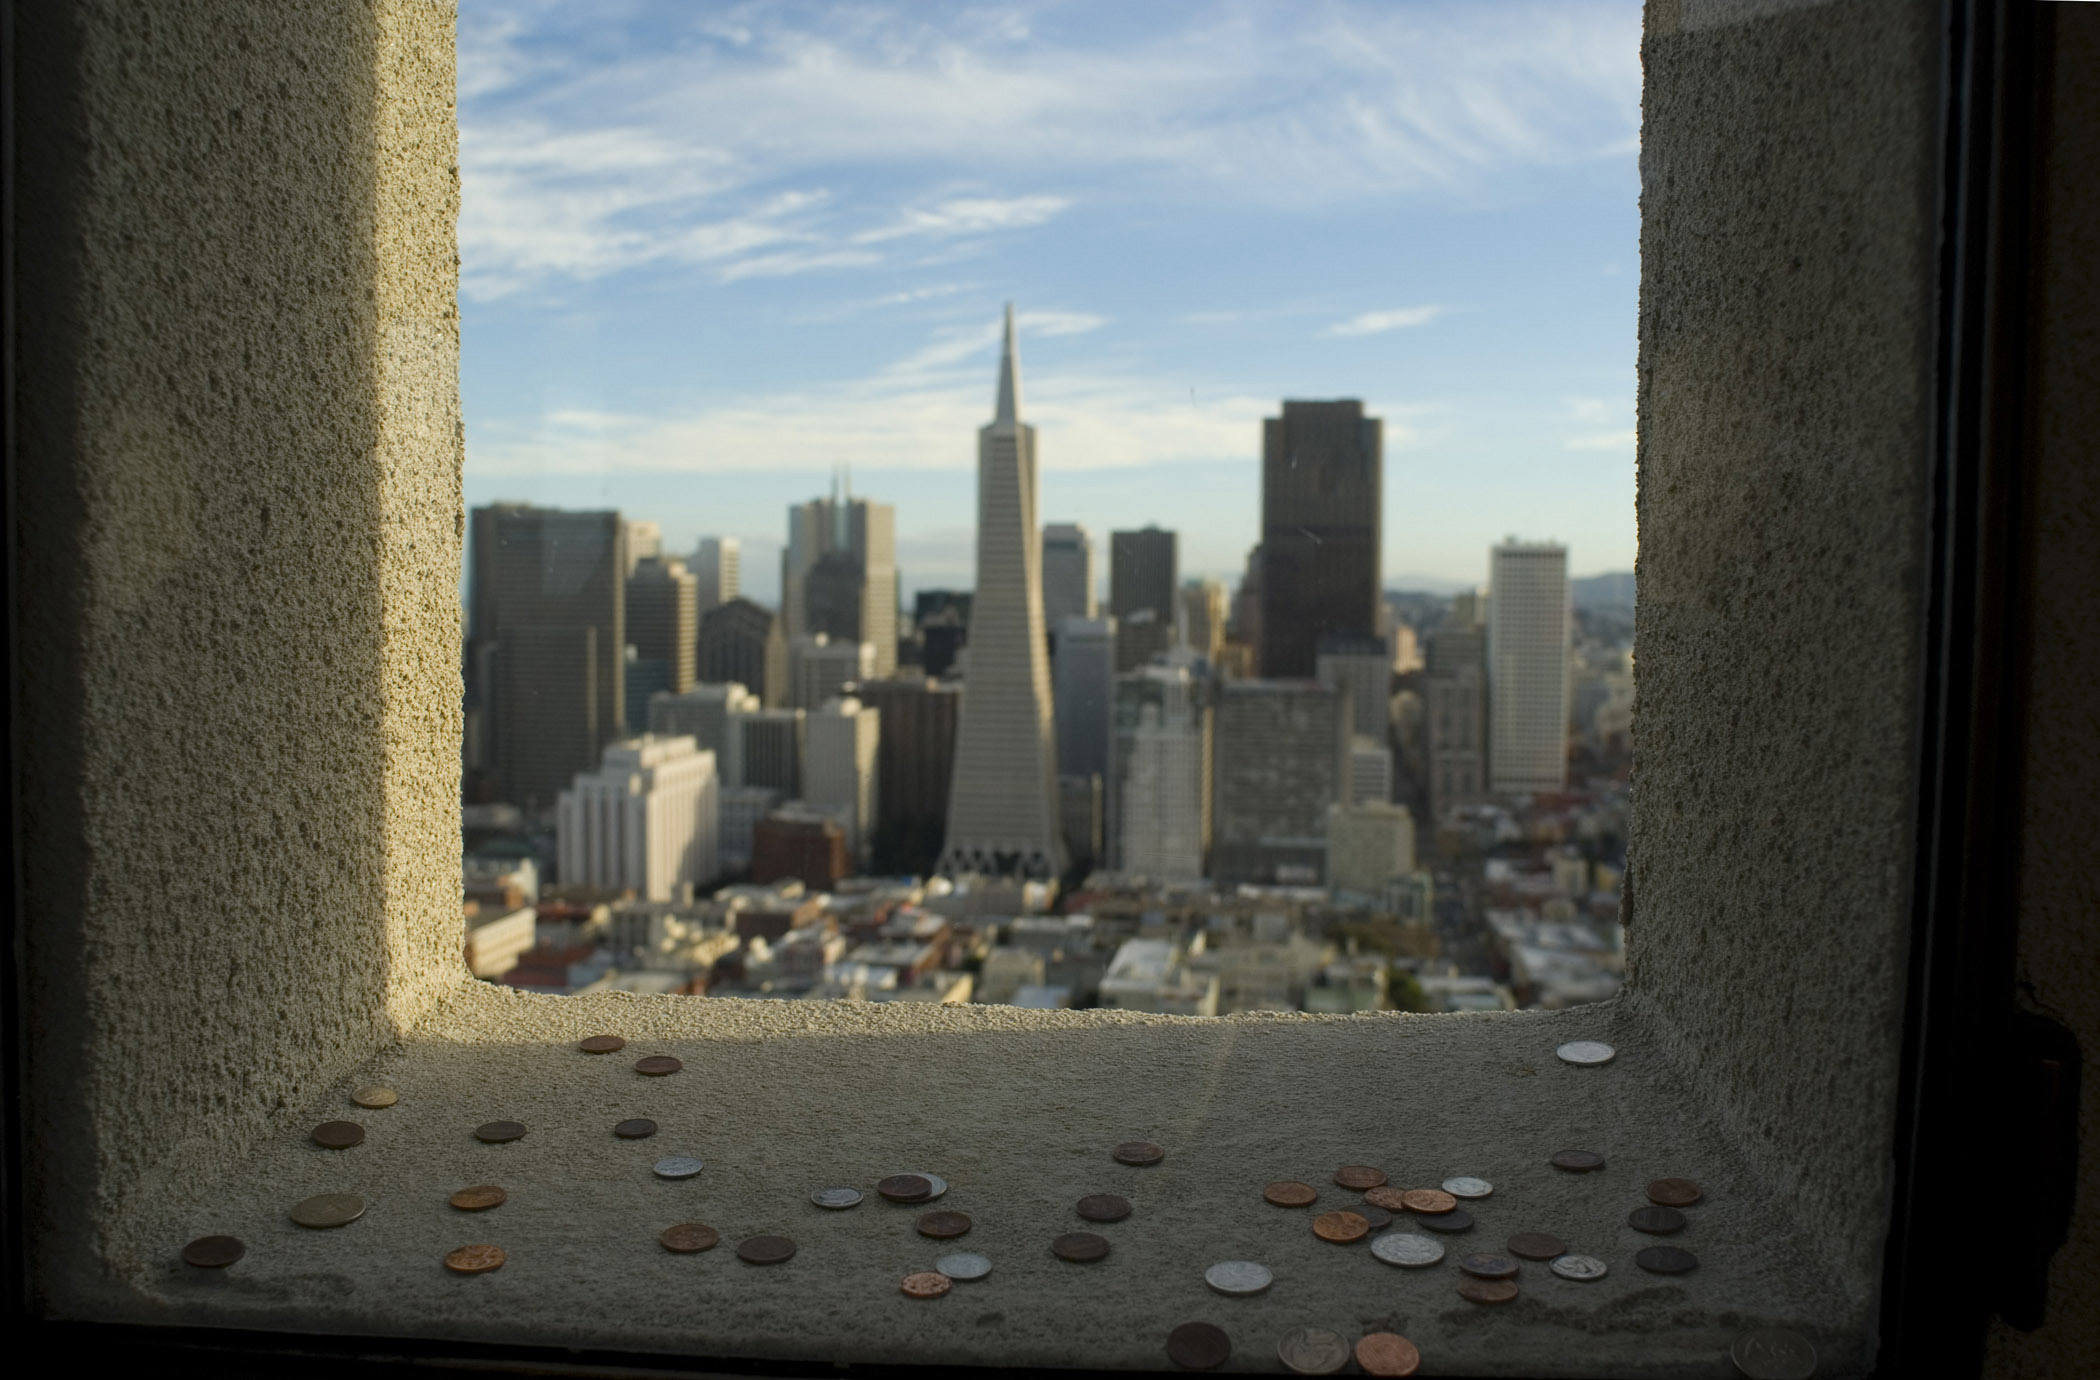 Coit Tower Coins thrown for good luck through the window overlooking the central CBD of San Francisco